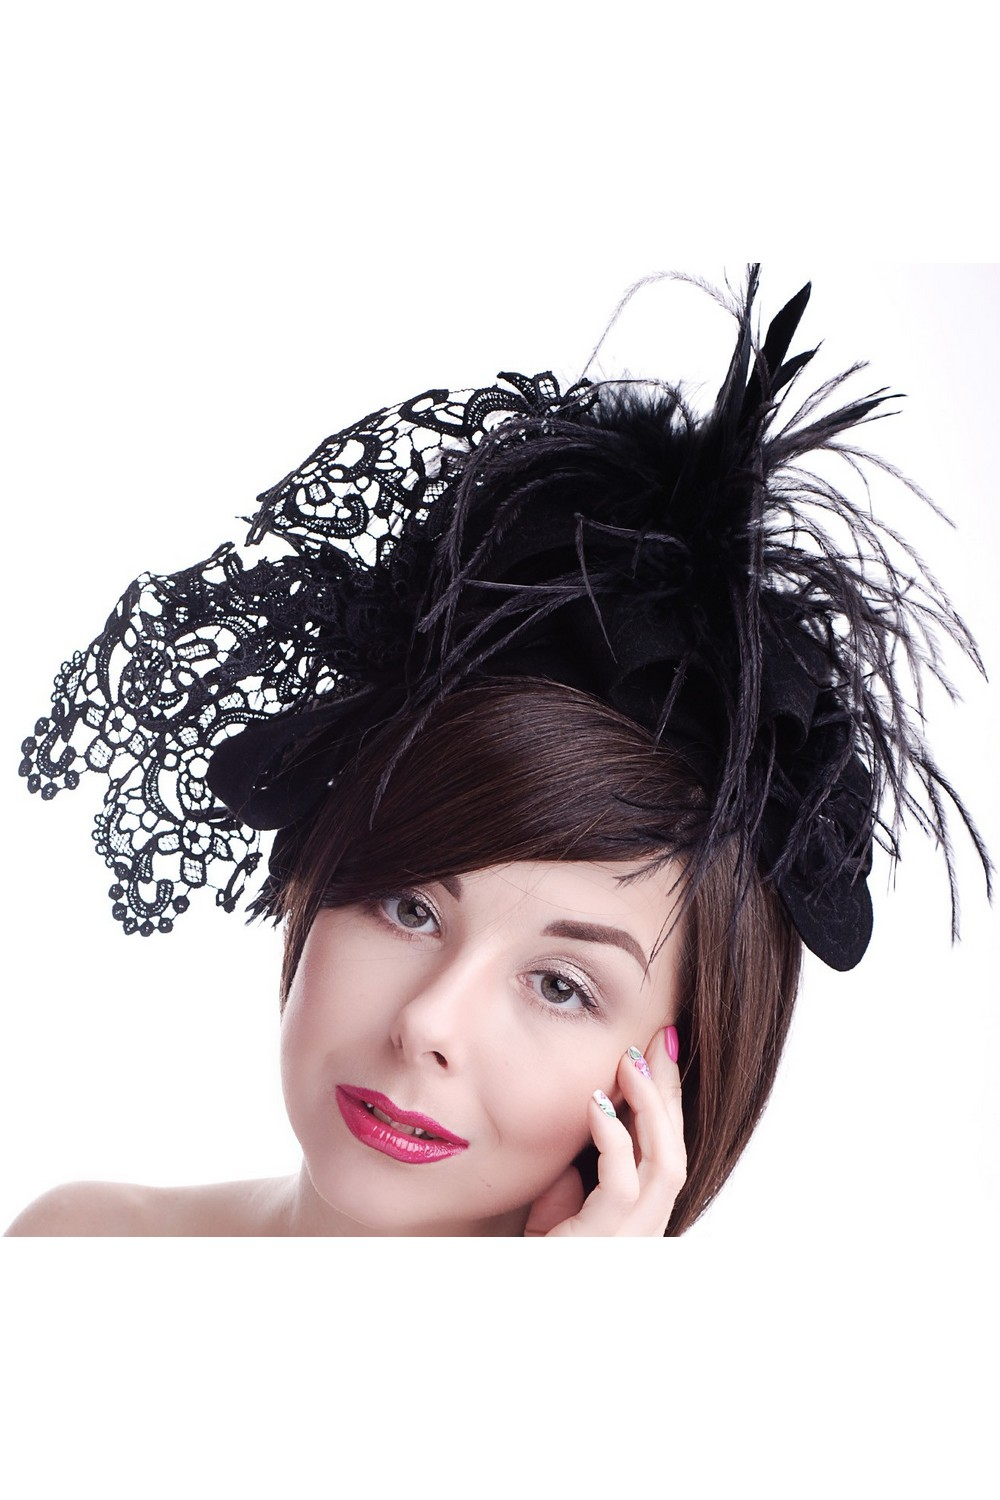 Buy Designer black felt women's lace feather hat in retro style, Unique exclusive designer stylish hat